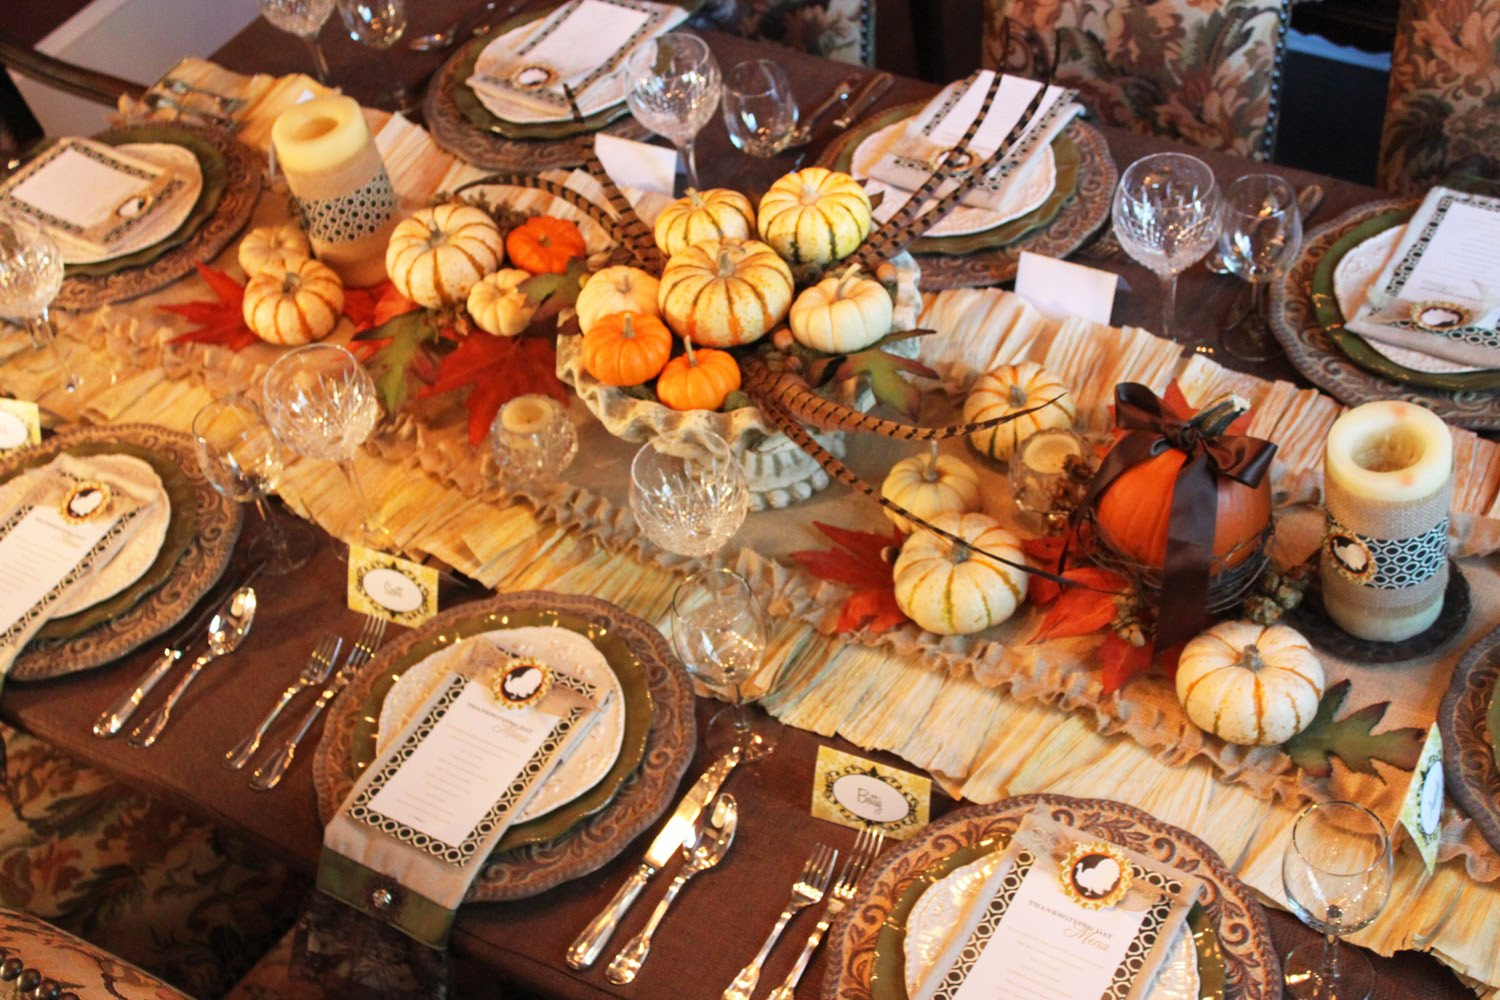 ideas  Thanksgiving table Ideas Decorate: Decorating Table runner Anyone homemade Can